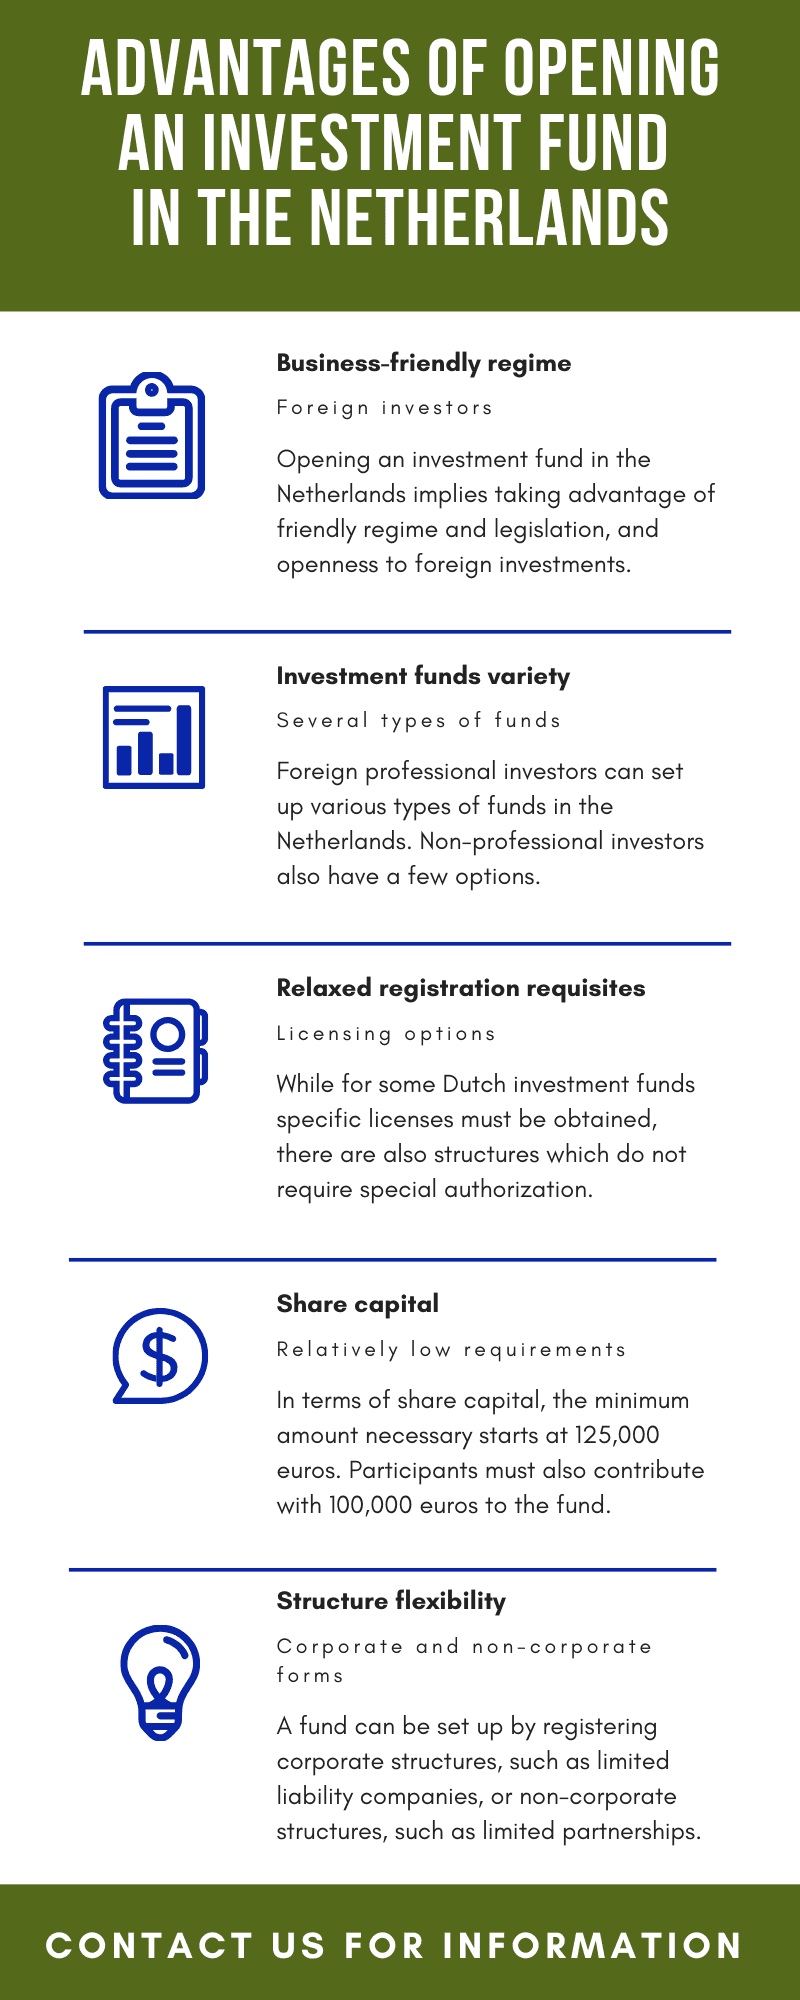 The-advantages-of-opening-an-investment-fund-in-the-Netherlands.png